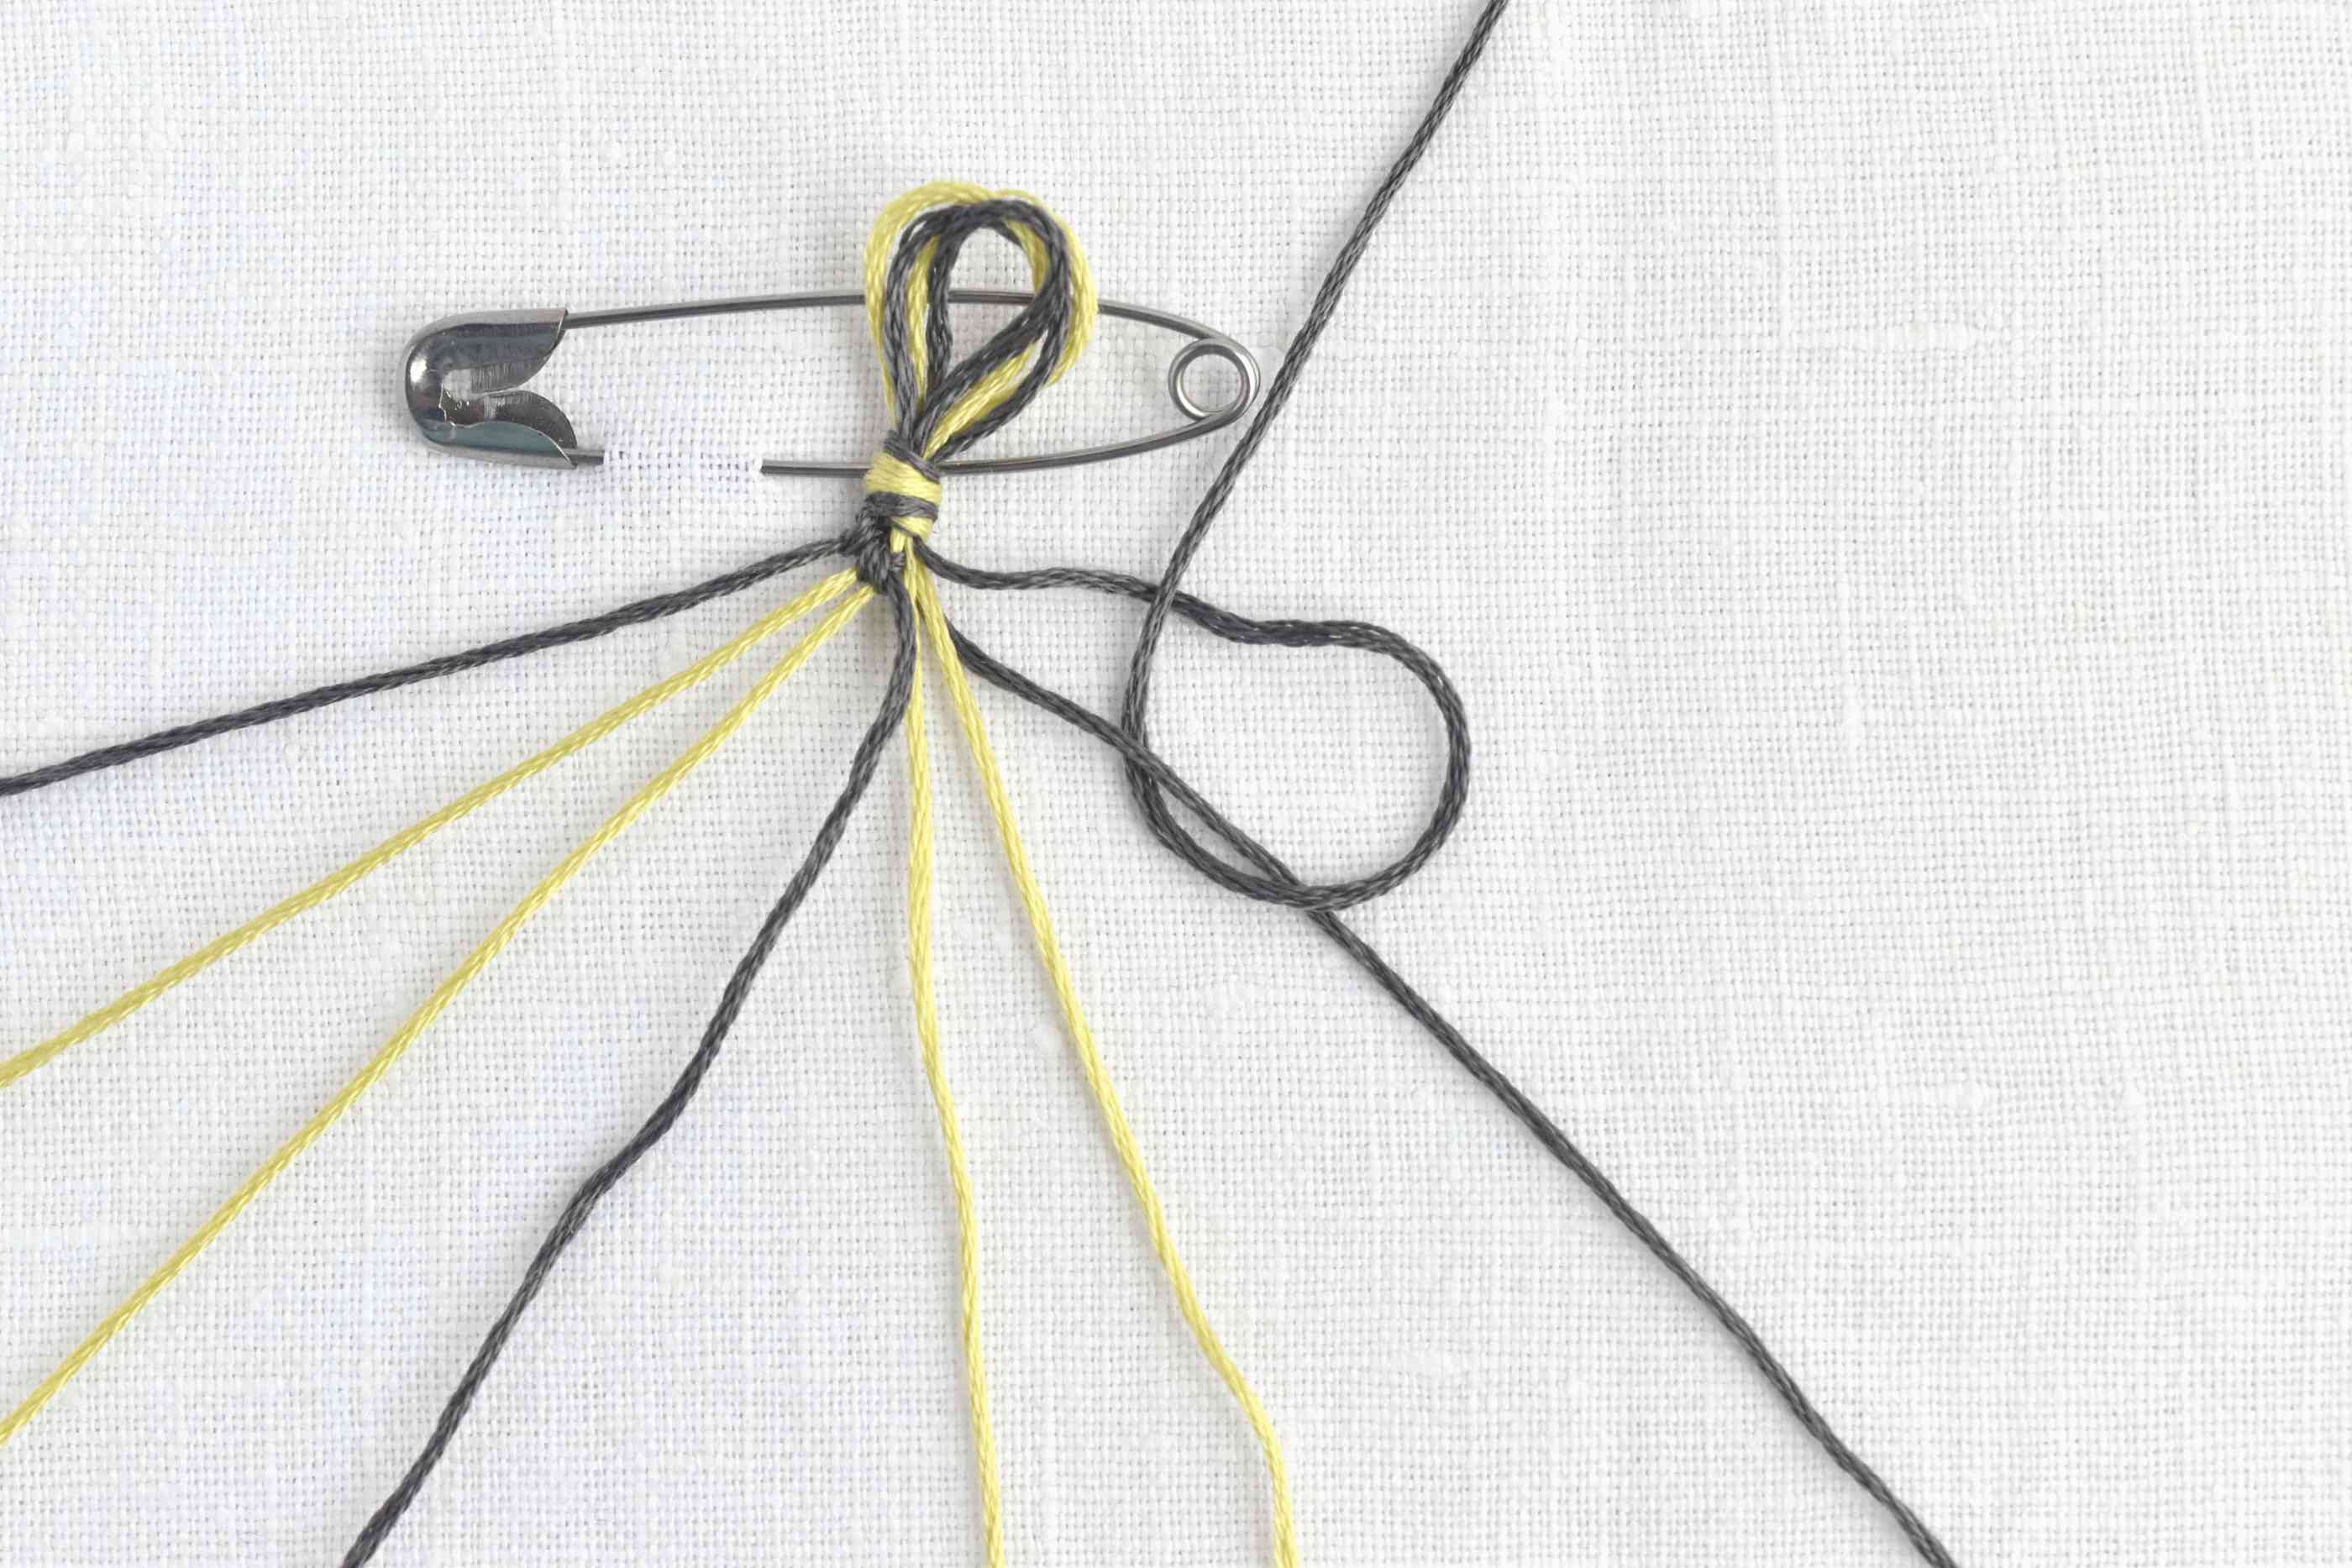 Bring the thread through the backwards 4 to finish the knot